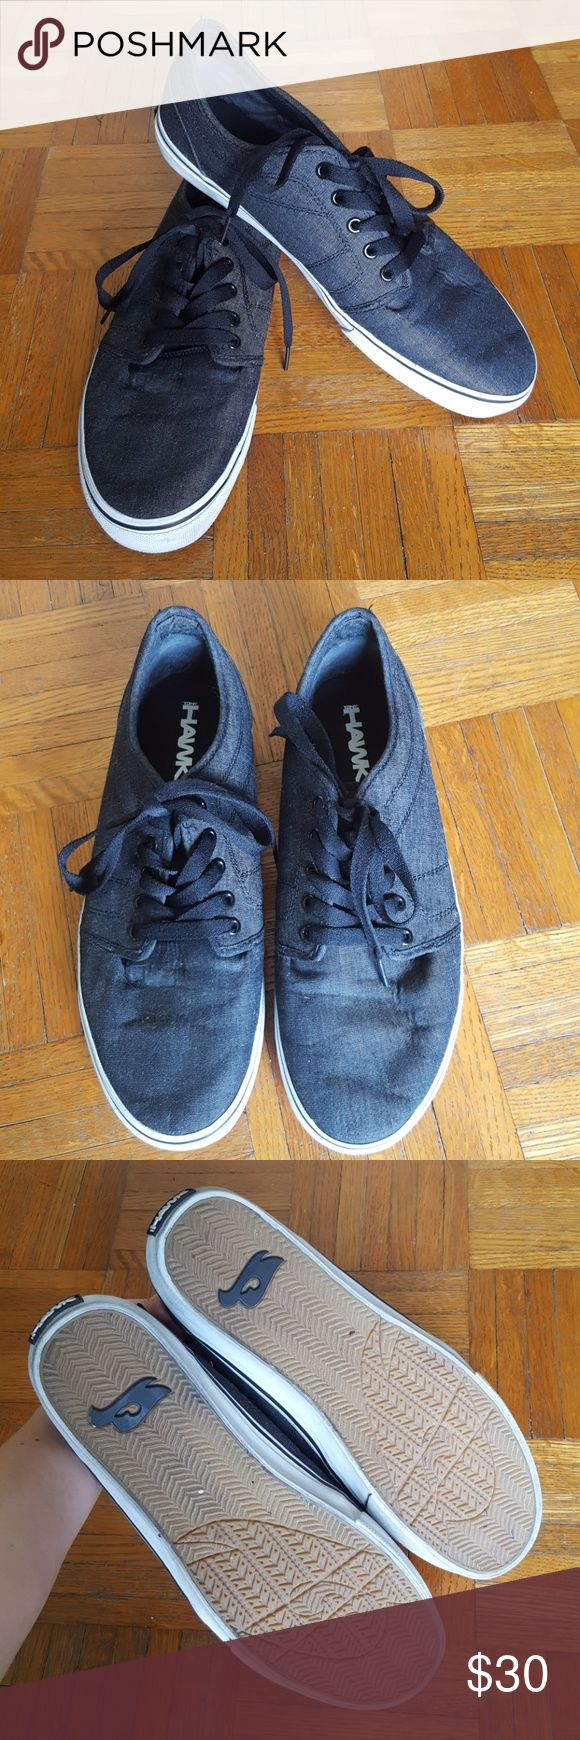 Men's casual tennis shoes Excellent used condition Tony Hawk dark charcoal grey casual men's tennis shoes. They have black shoelaces and black top stitching. They were worn a few times but ended up being too tight for my husband. Tony Hawk Shoes Sneakers